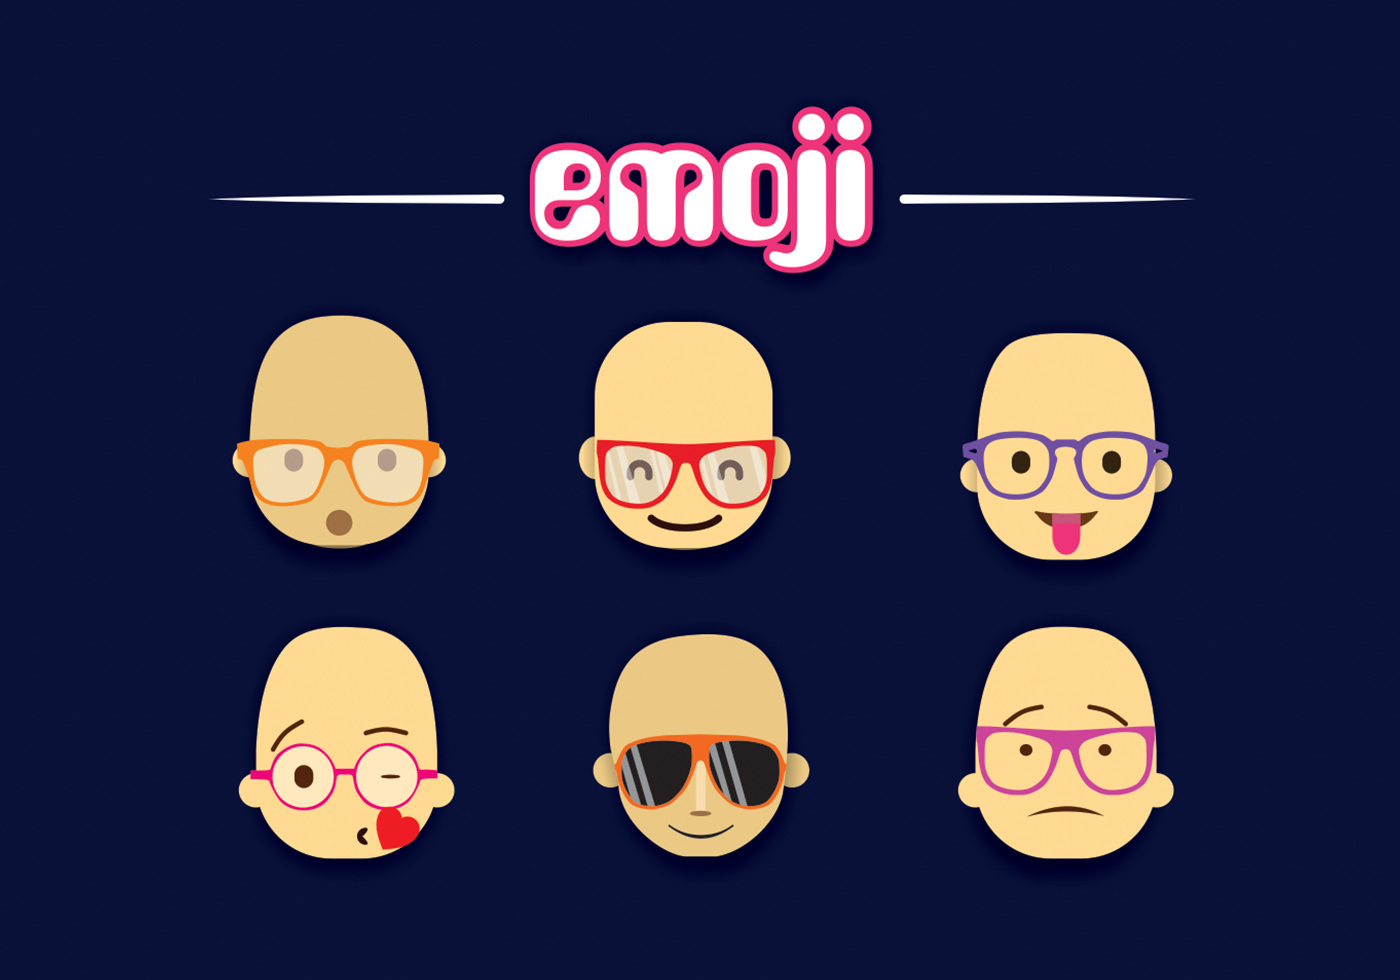 Creative emoji download free vector art stock graphics images biocorpaavc Image collections